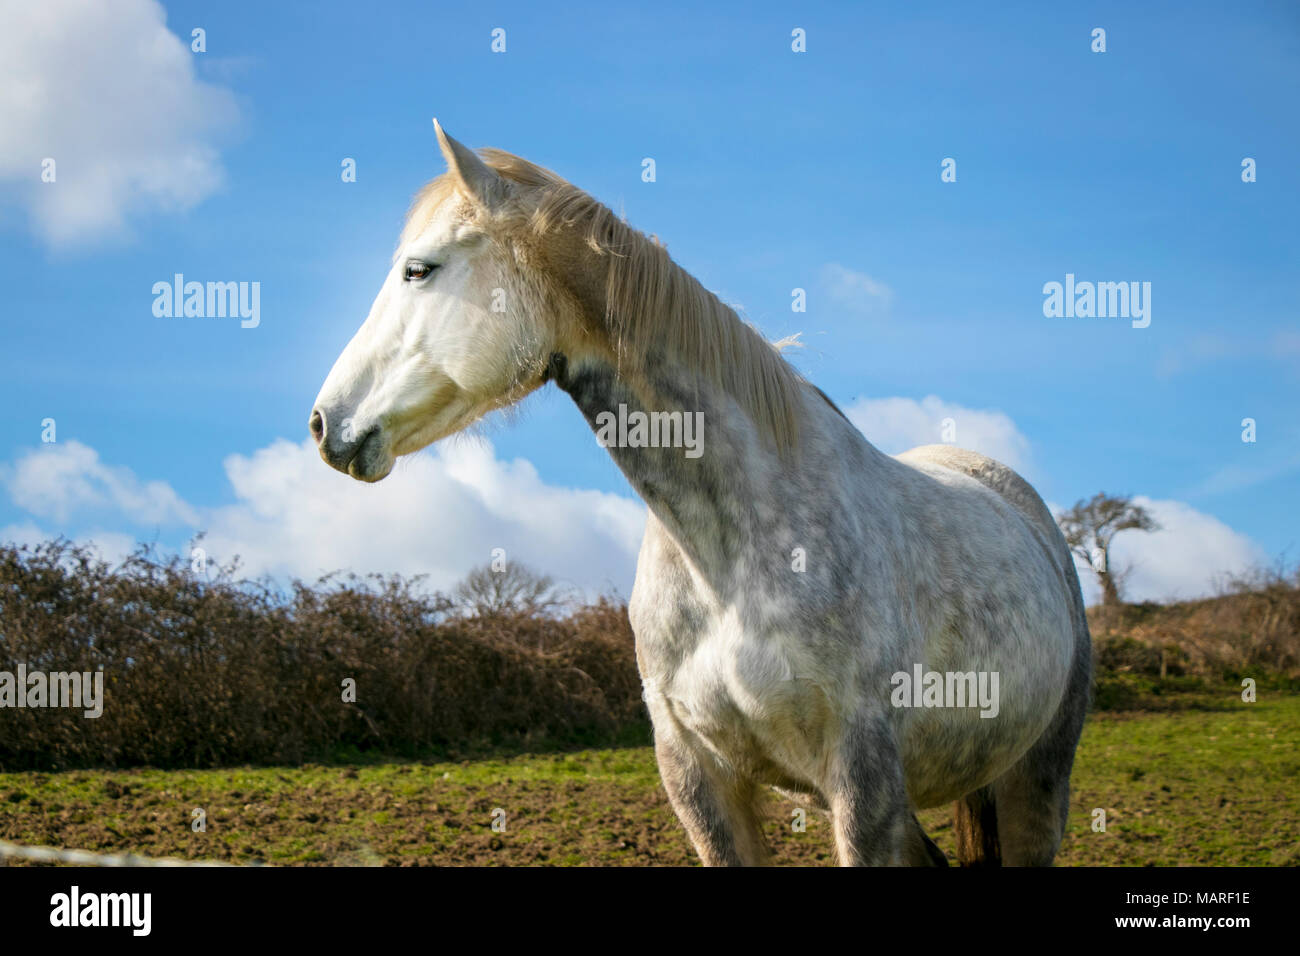 Portrait of beautiful white horse standing in green hillside against blue sky with trees in the background - Stock Image